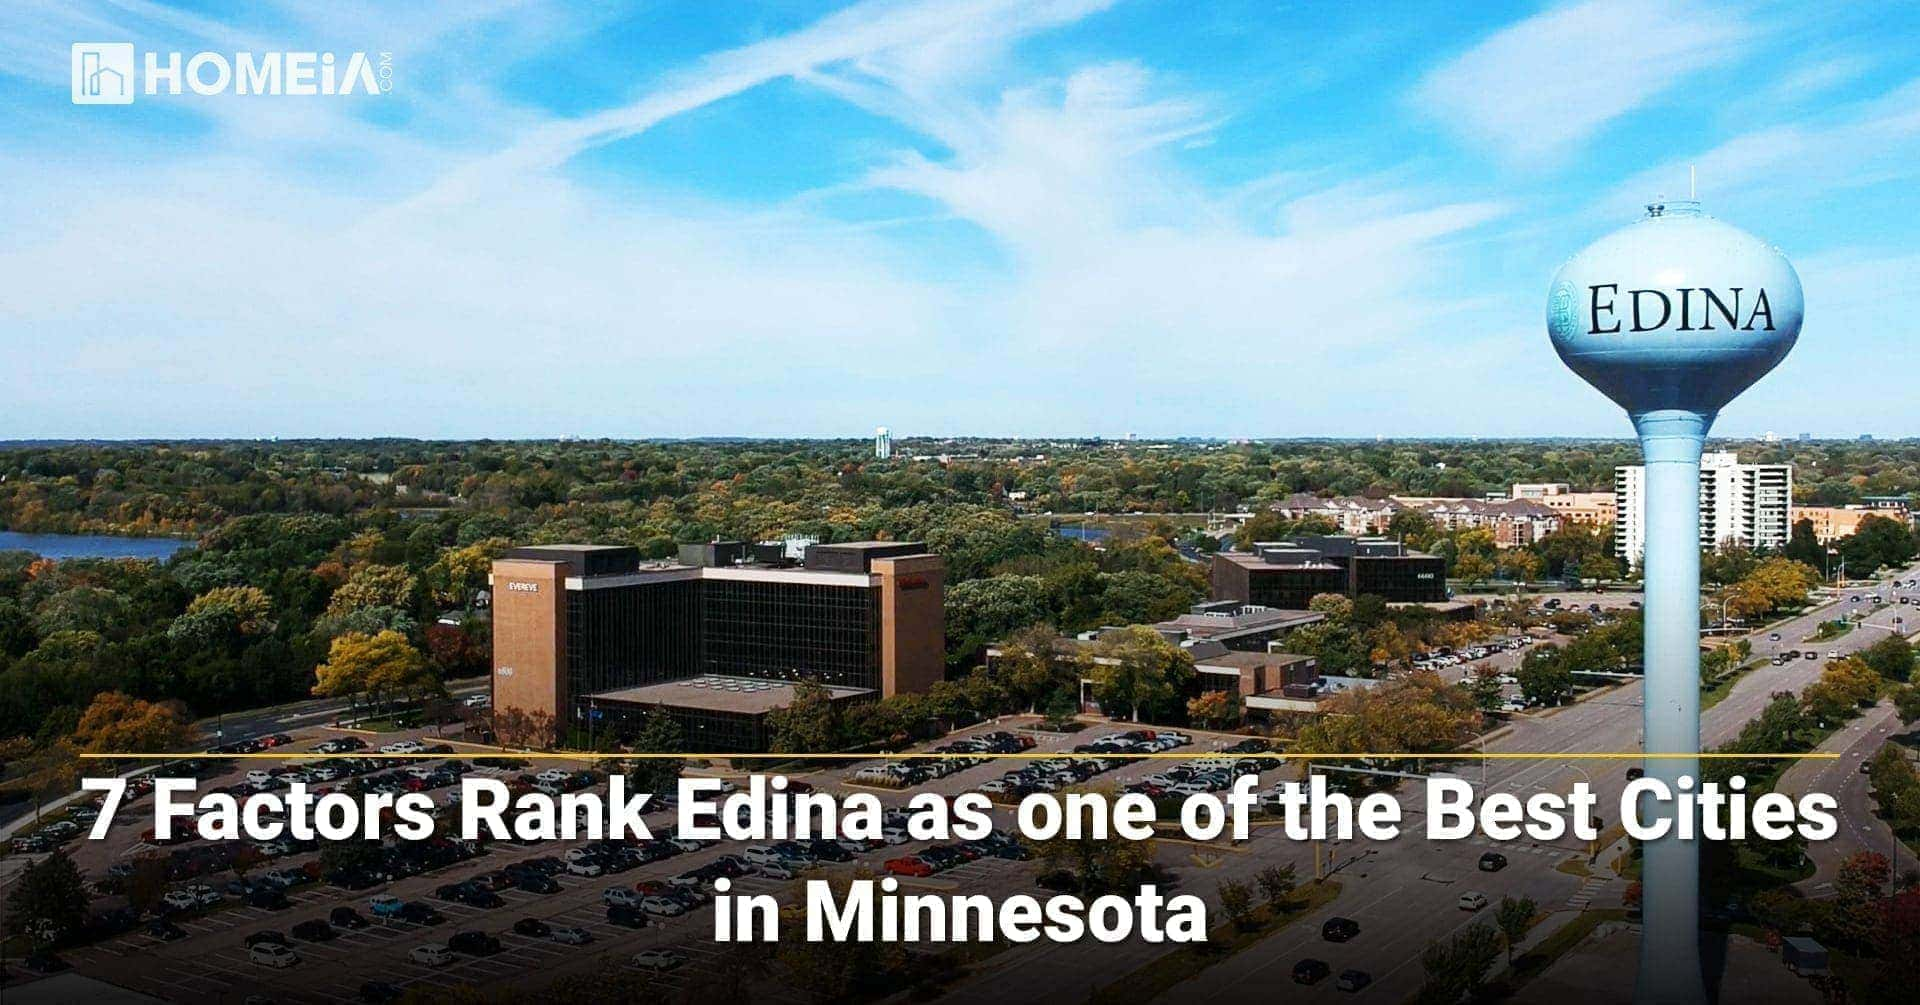 7 Factors Rank Edina as one of the Best Cities in Minnesota